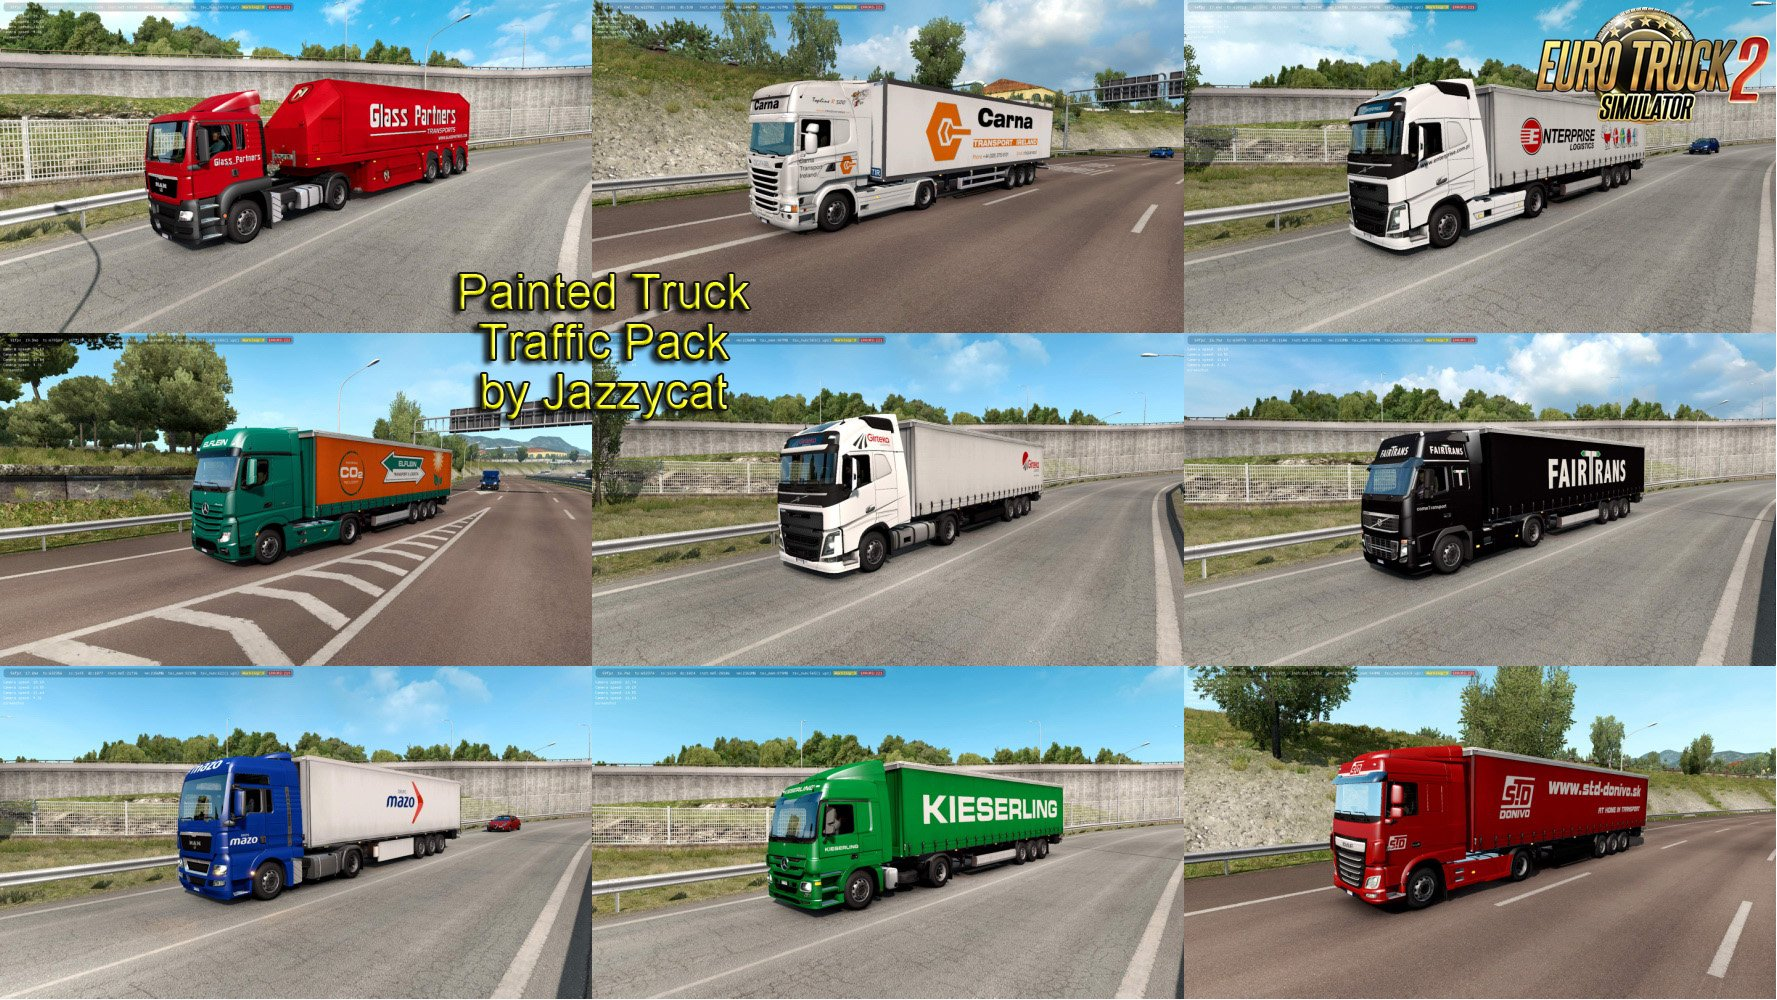 Painted Truck Traffic Pack v6.8 by Jazzycat